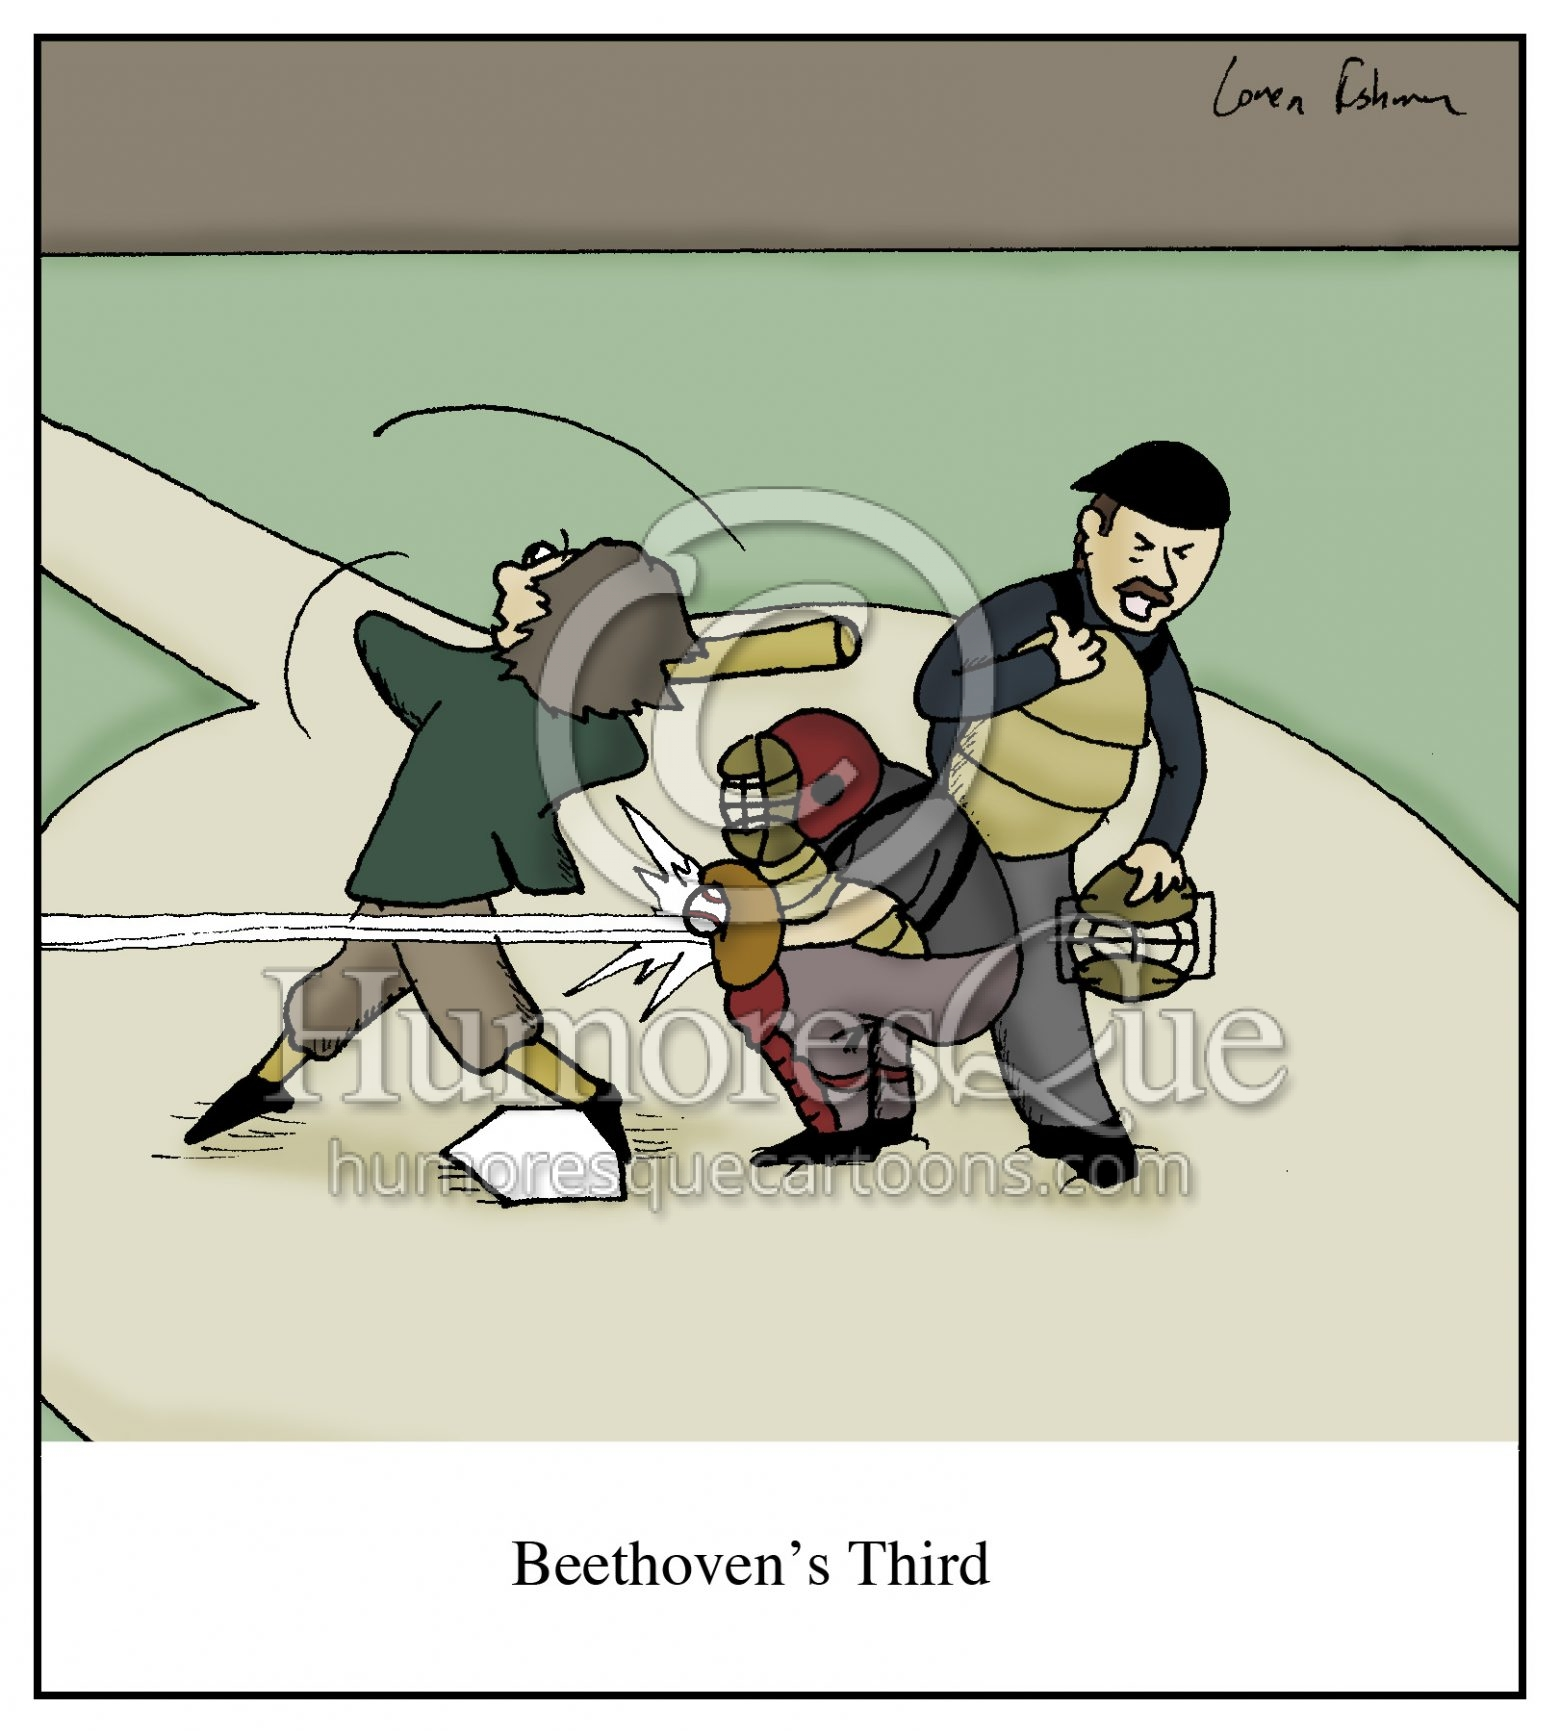 Beethoven's Third Symphony Baseball Cartoon